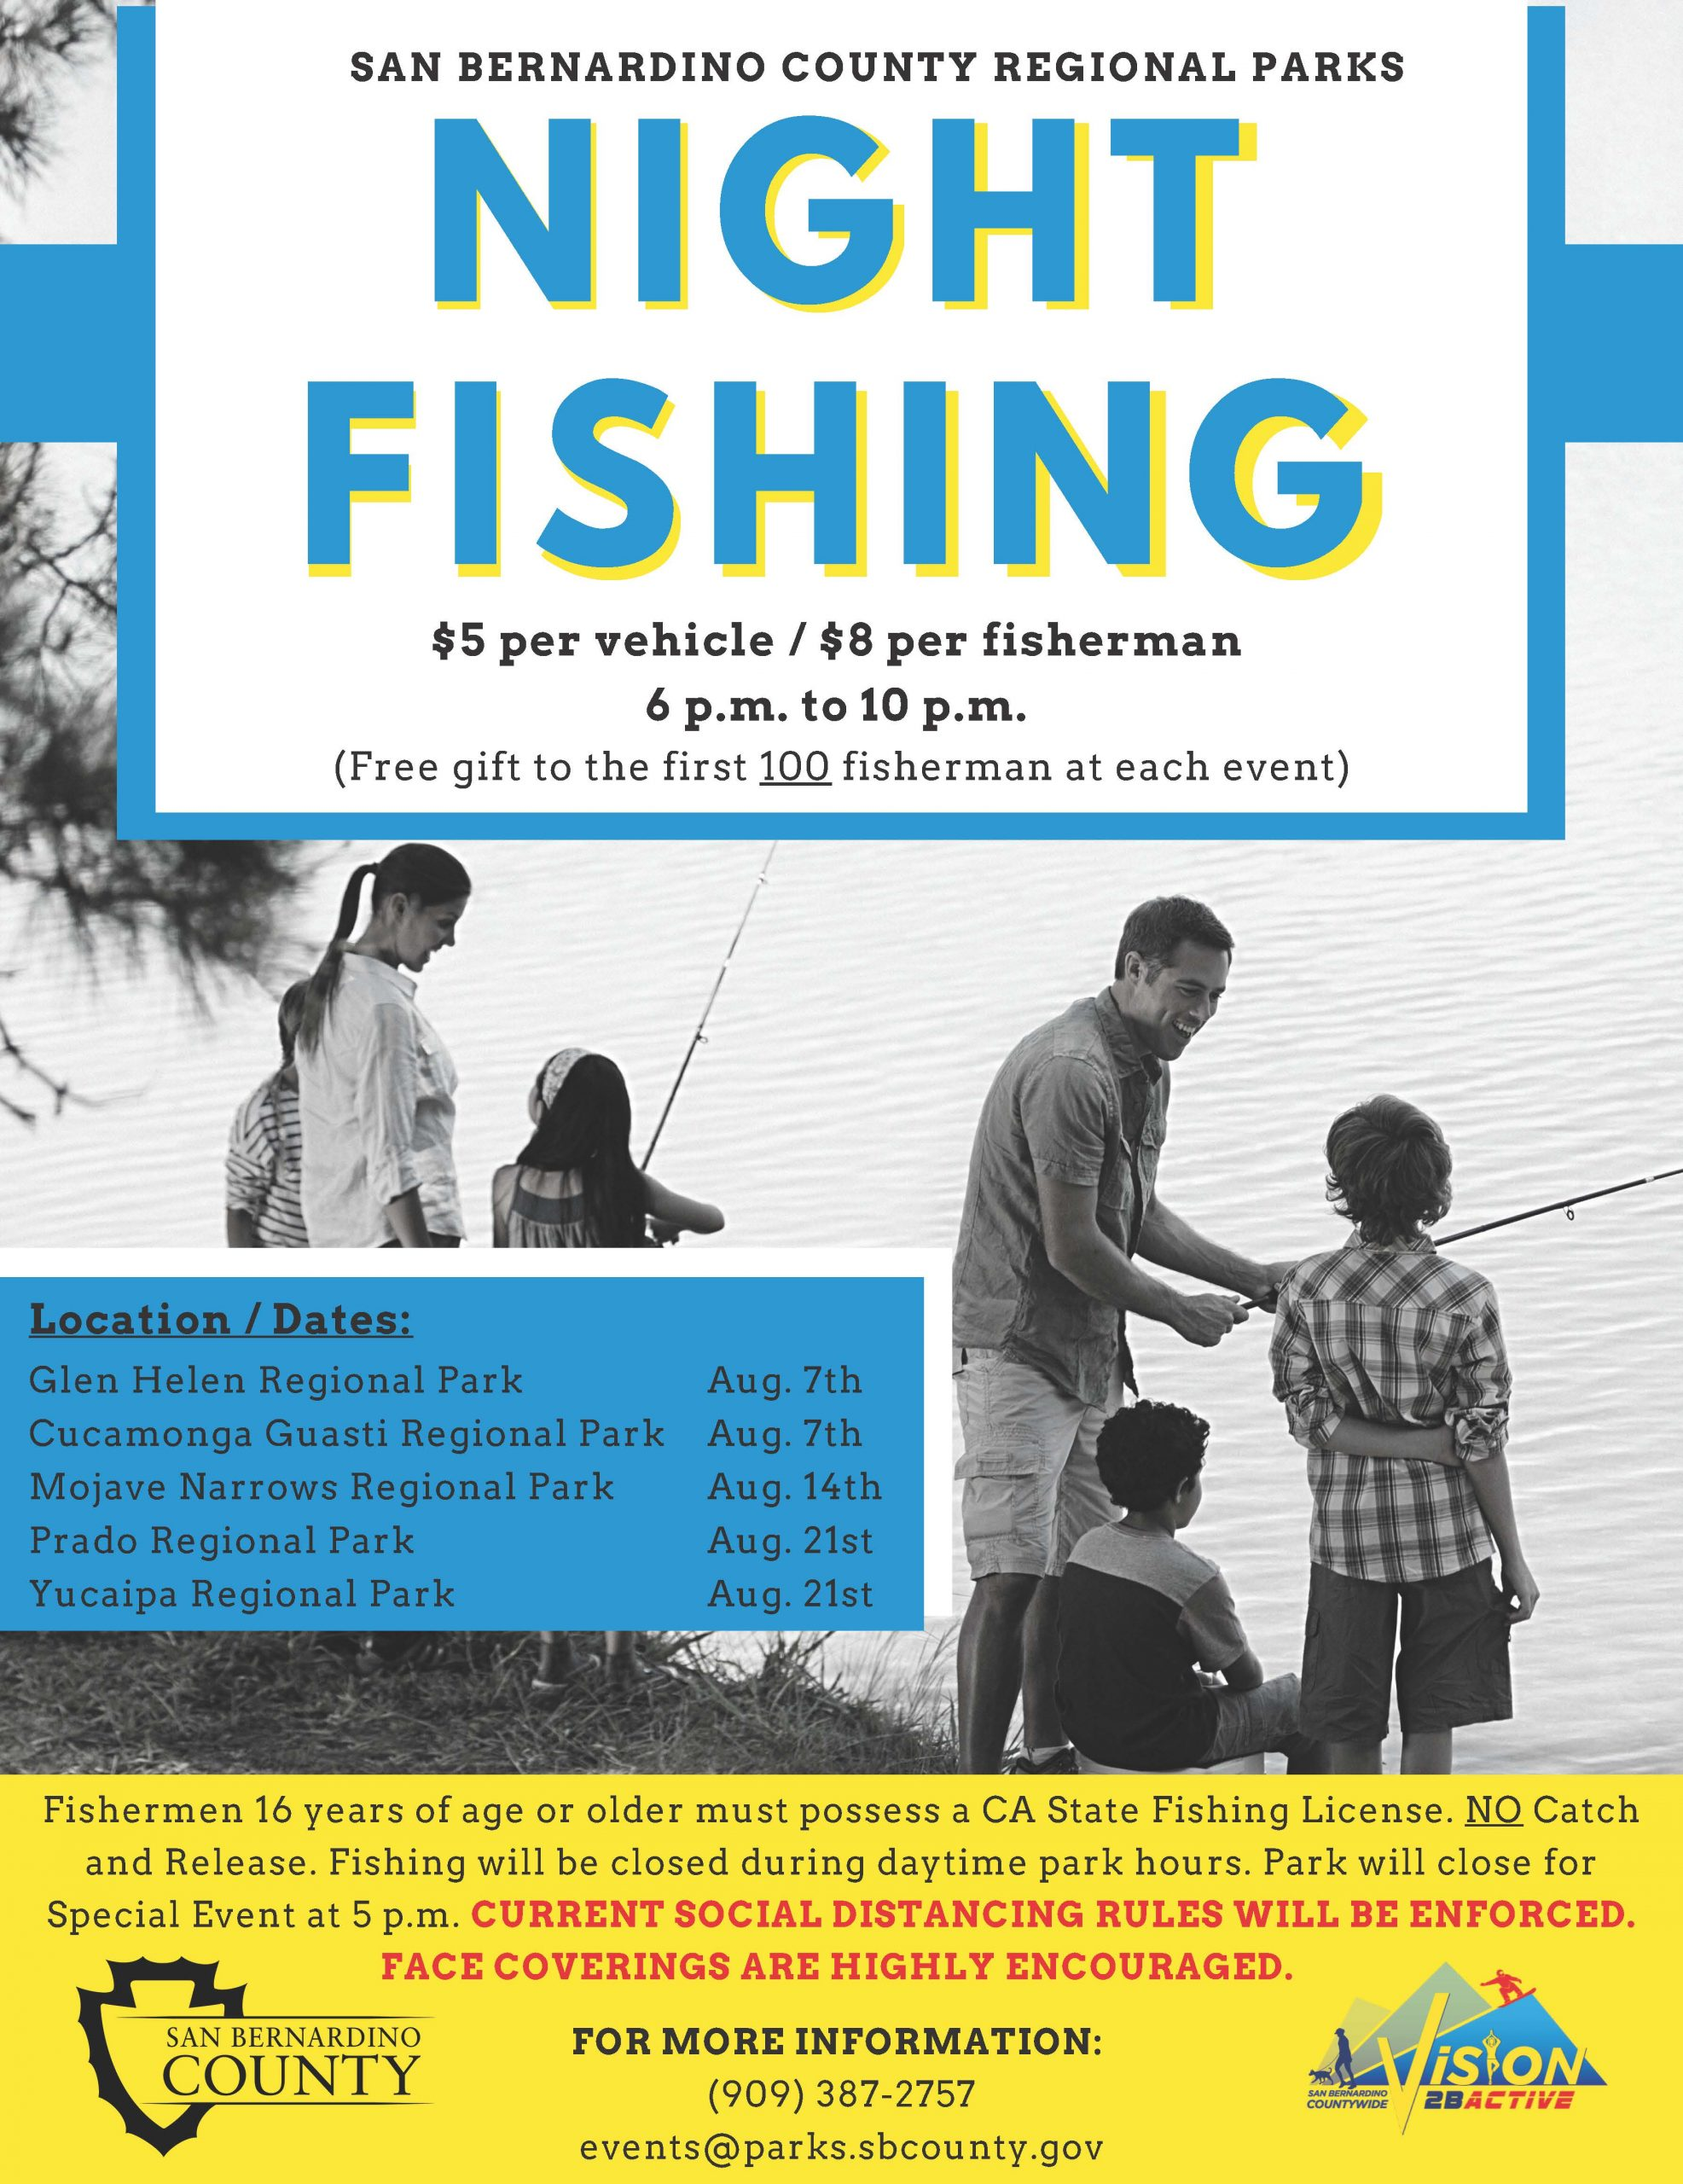 A picture of a woman and two children on the left with a little girl holding a fishing pole and on the right a man holding a fishing pole is smiling at two boys in front of a lake. This is a night fishing flier with dates at Glen Helen Park, Aug. 7. Guasti Park, Aug. 7. Mojave Narrows Park, Aug.14. Prado Park, Aug. 21 and Yucaipa Park, Aug. 21. All night fishing begins at 6 PM to 10 PM. Free gift to the first 100 fisherman at each event/ Social distancing enforced and face coverings are recommended.